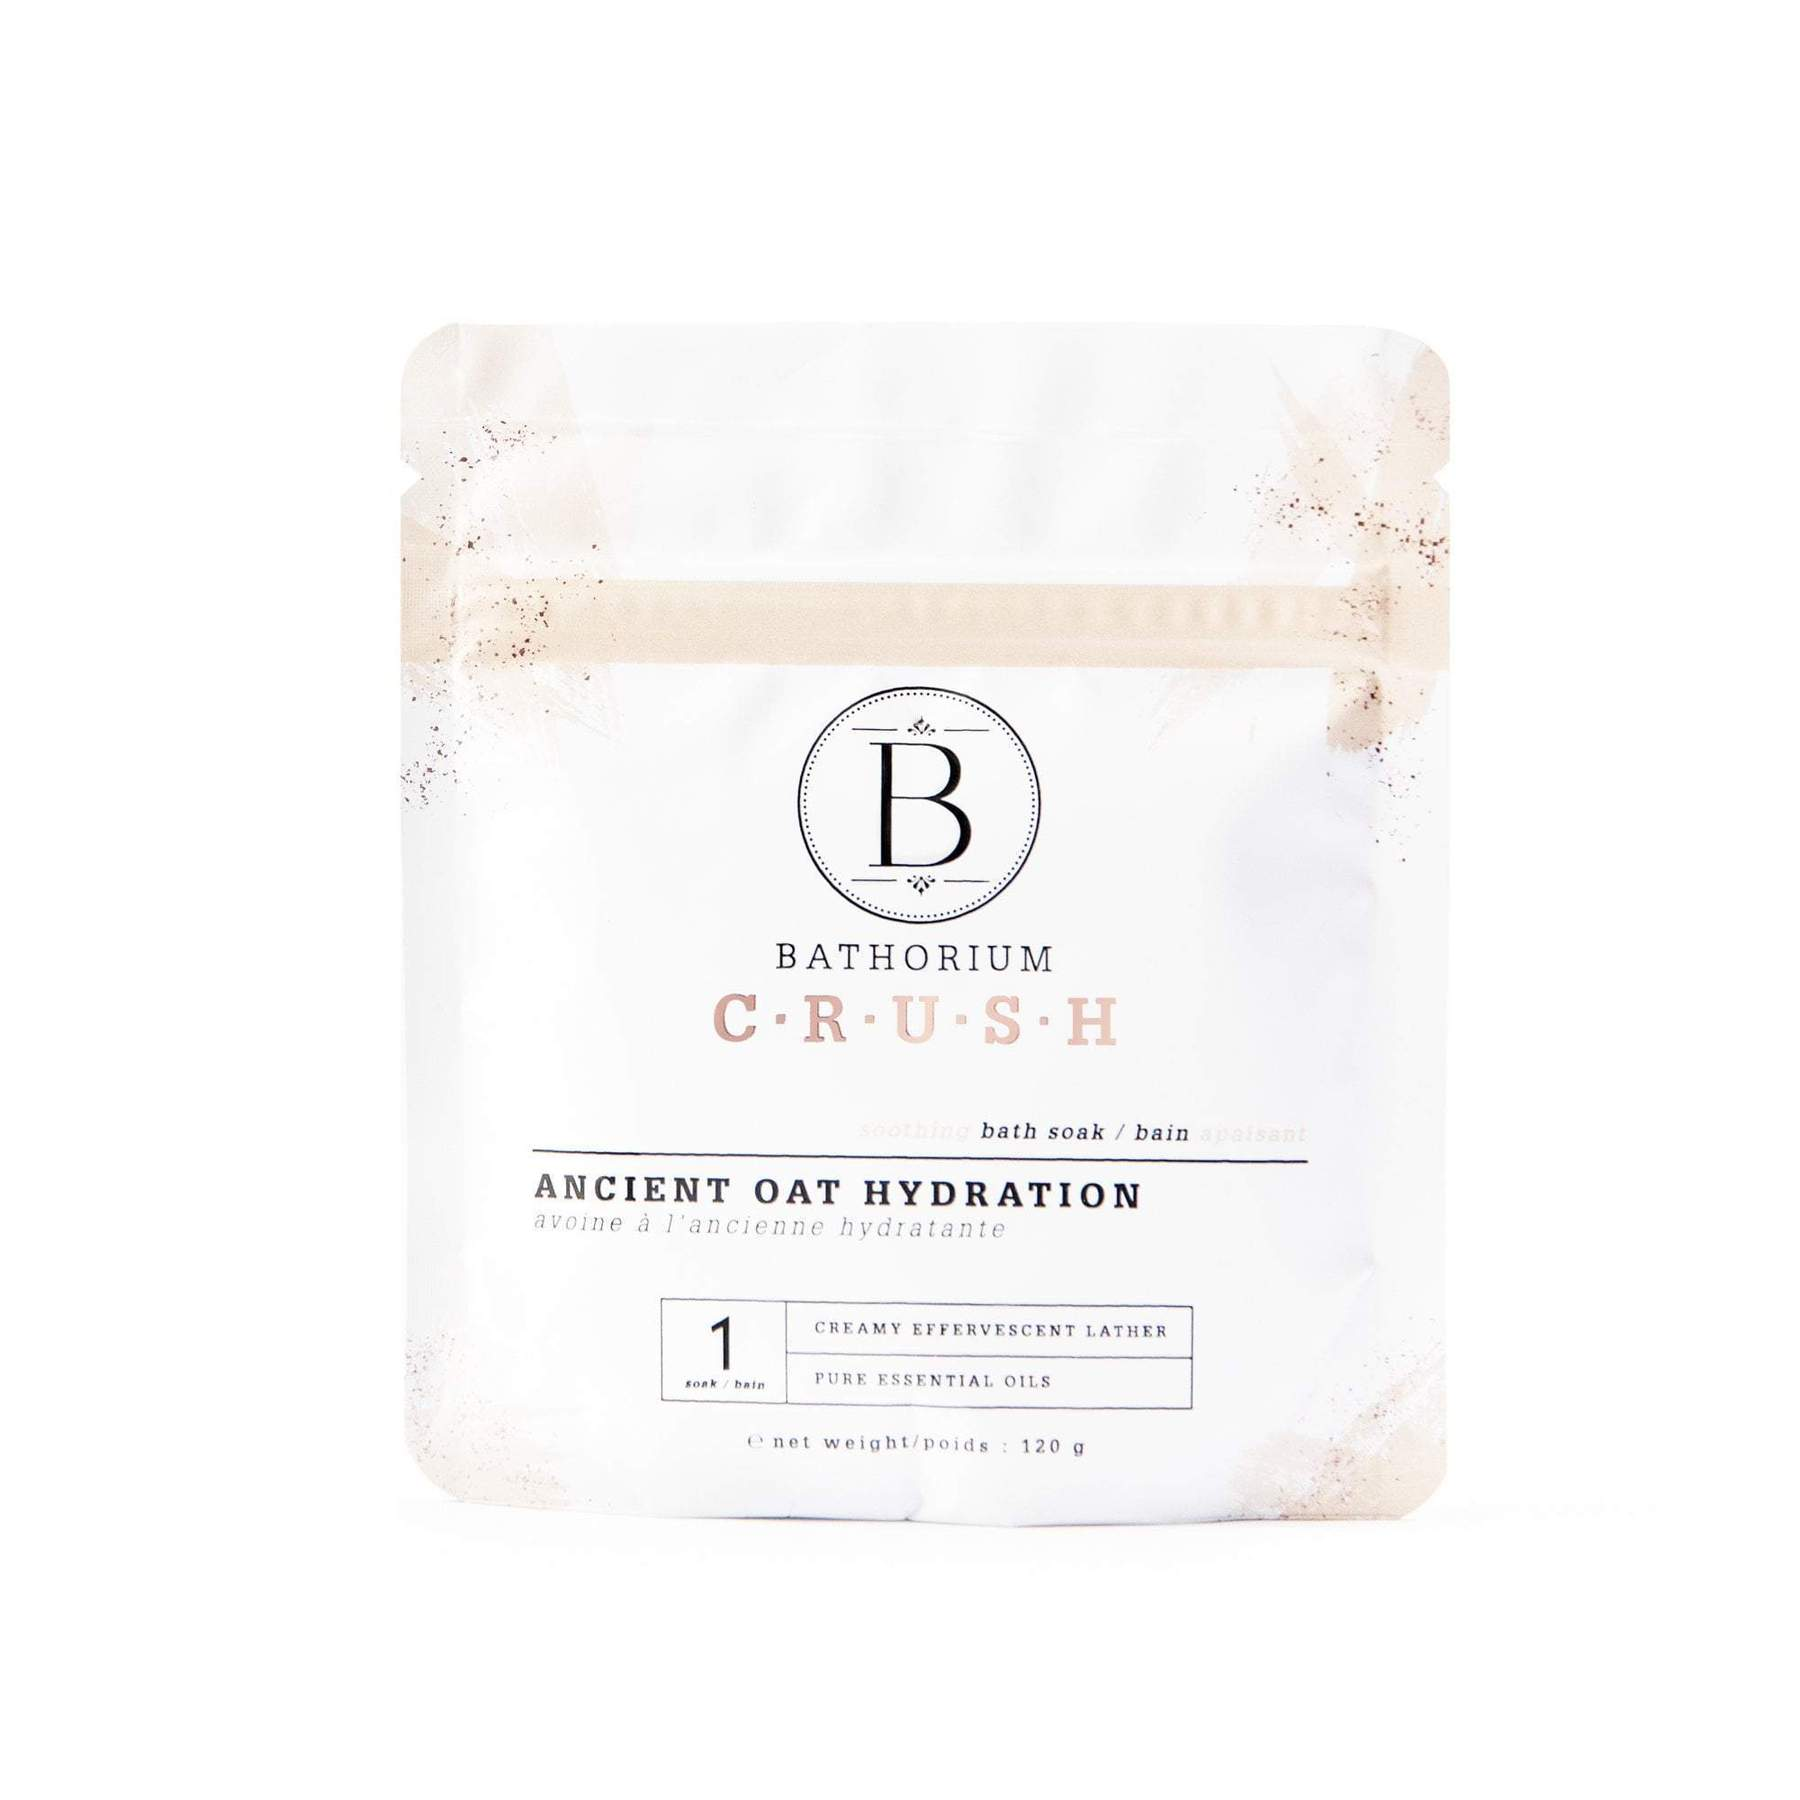 Oat Hydration Bath Soak